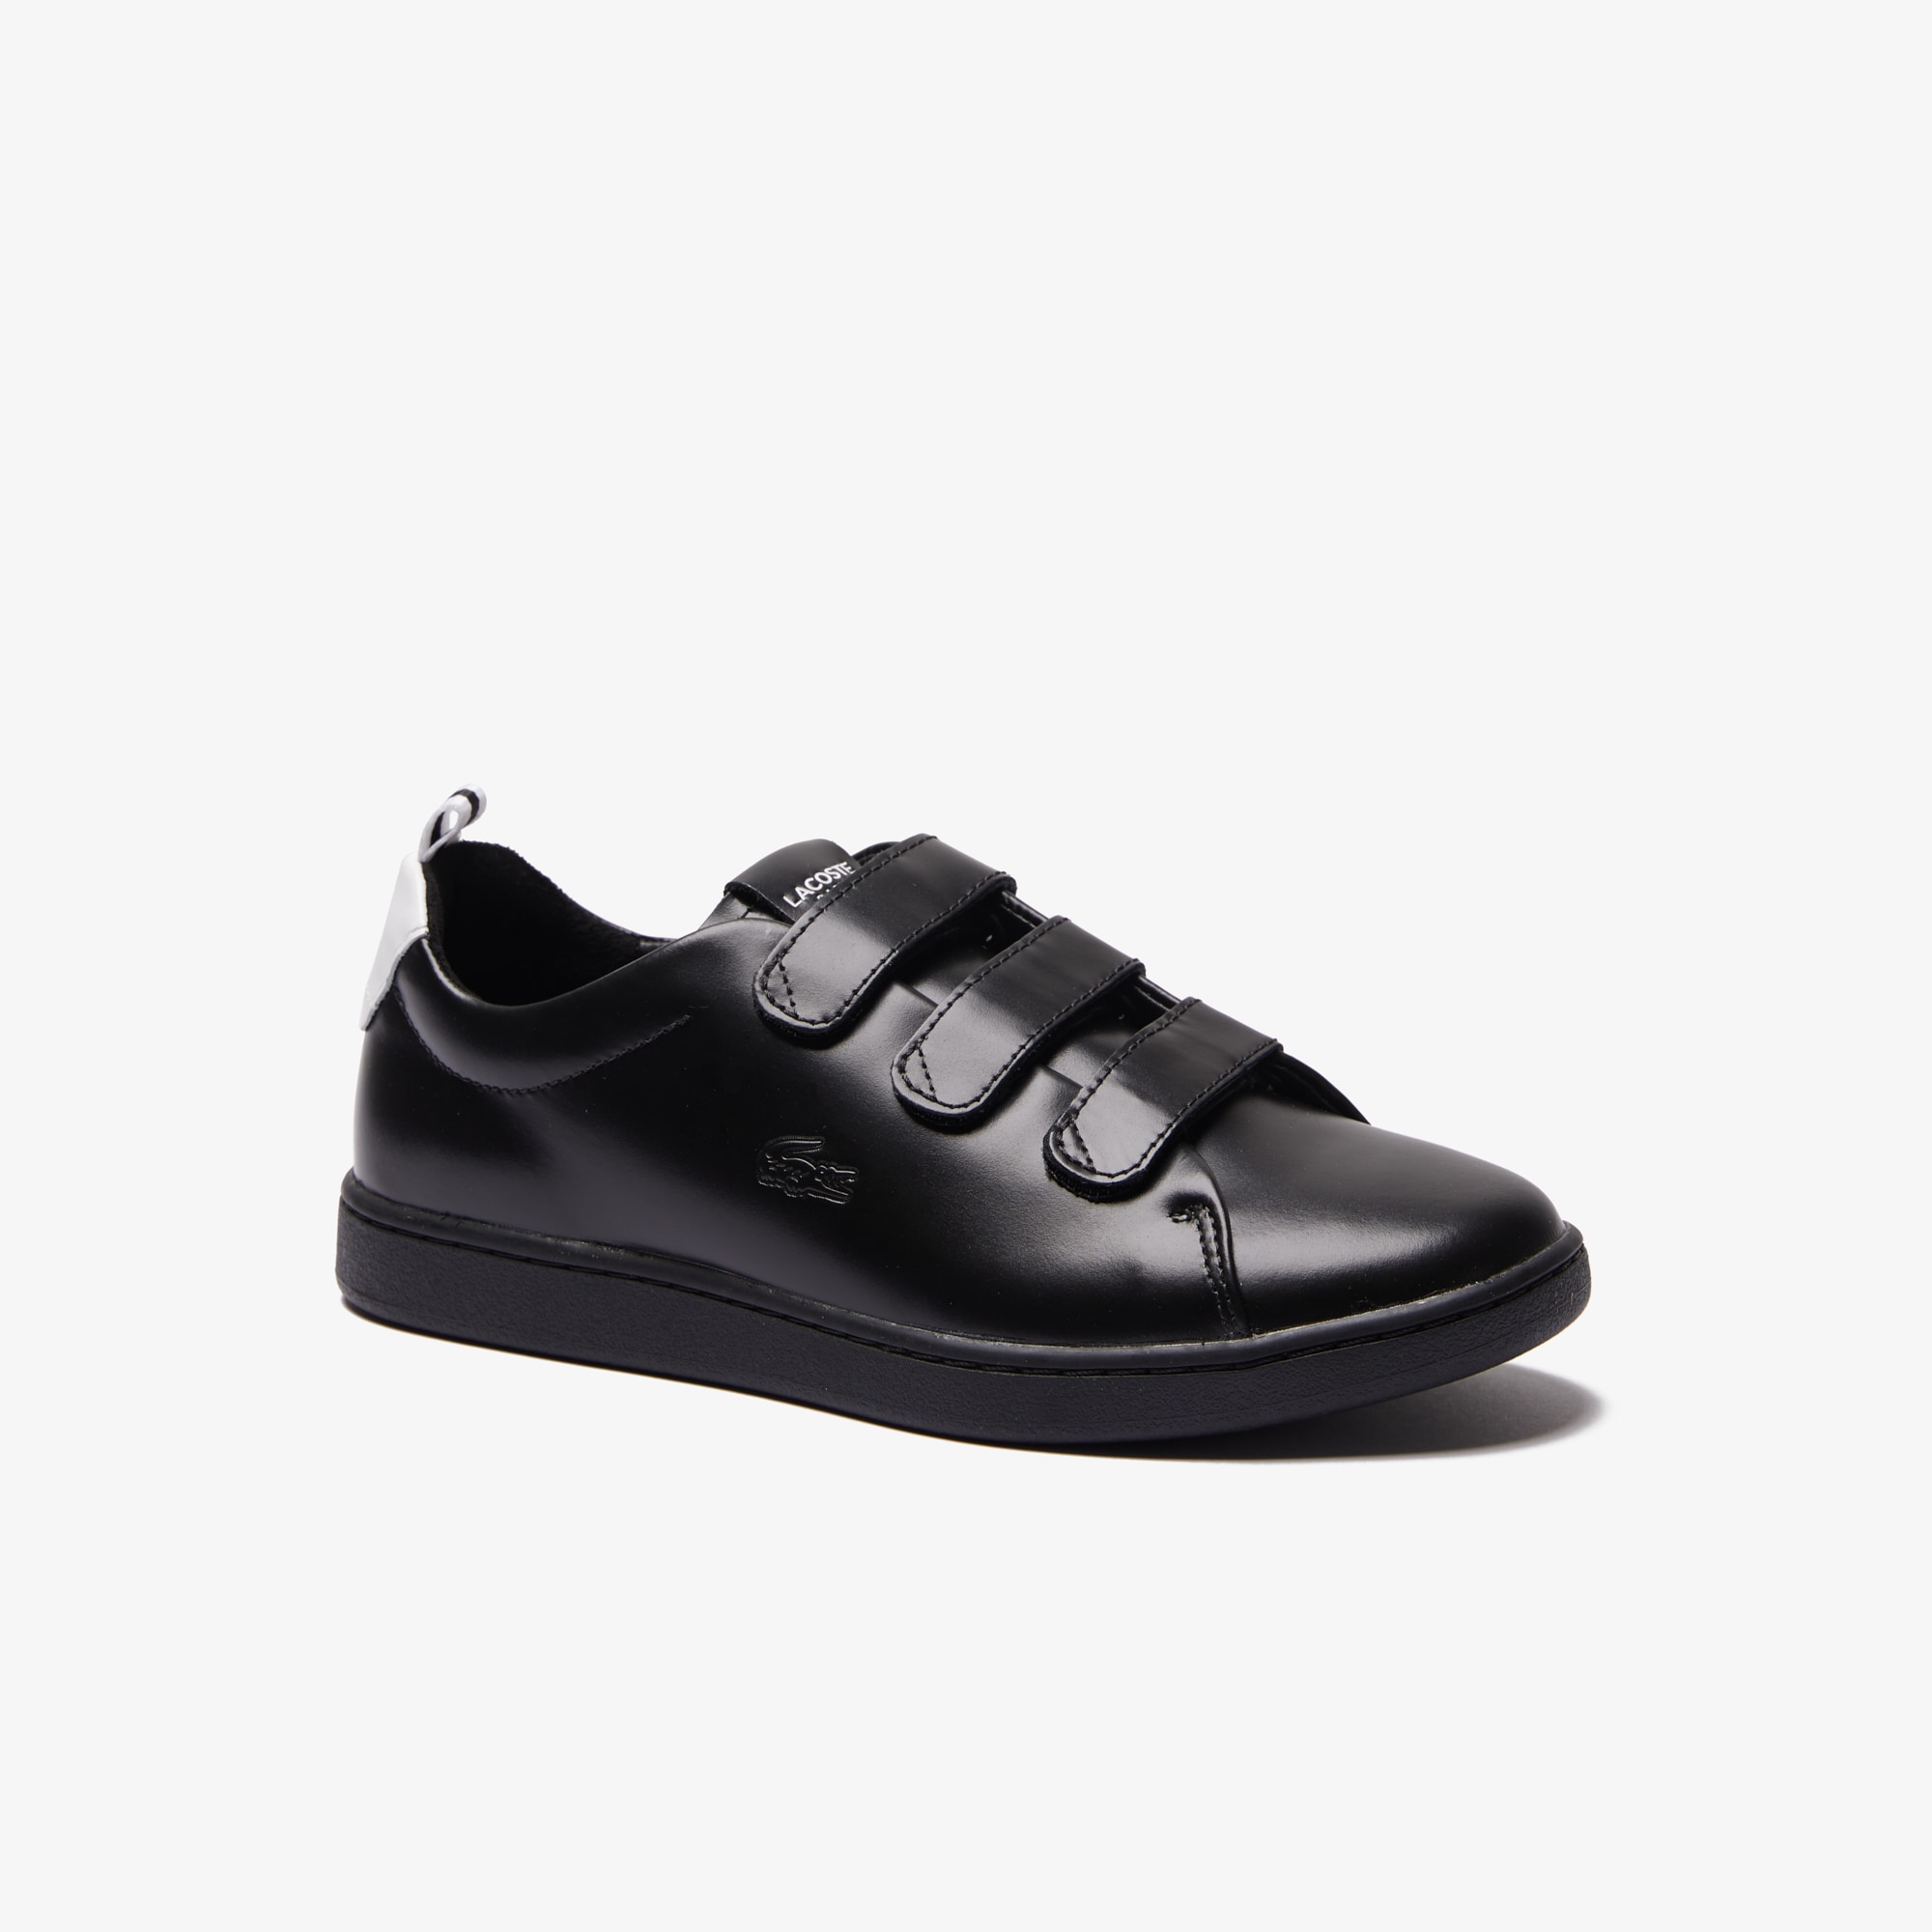 c8e7394e2 Shoes for Women | Footwear | LACOSTE